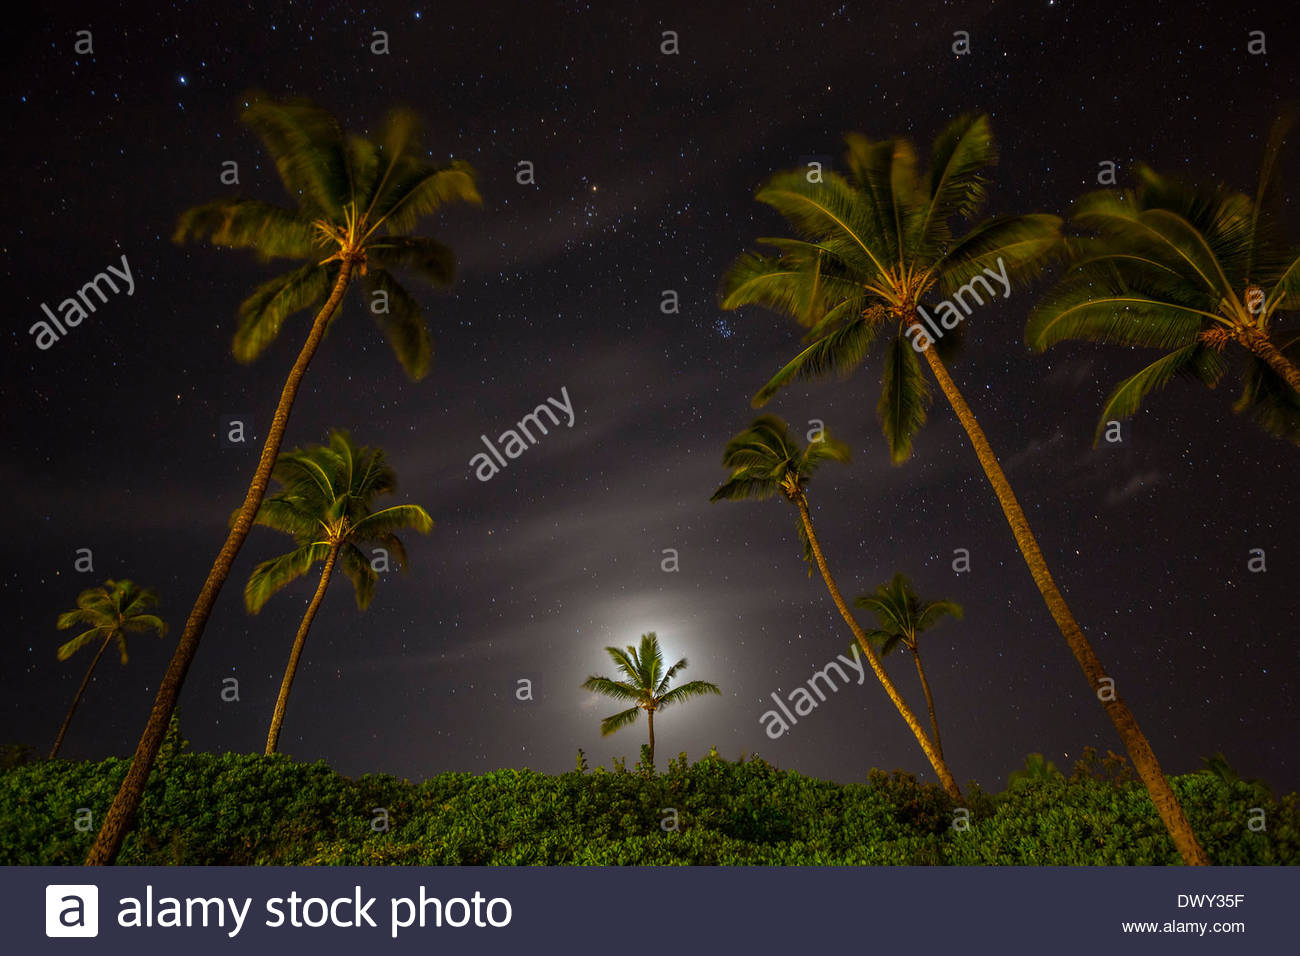 The moon glows behind a coconut palm tree (Cocos nucifera) as thousands of stars shine above Makena Beach on the island of Maui. - Stock Image